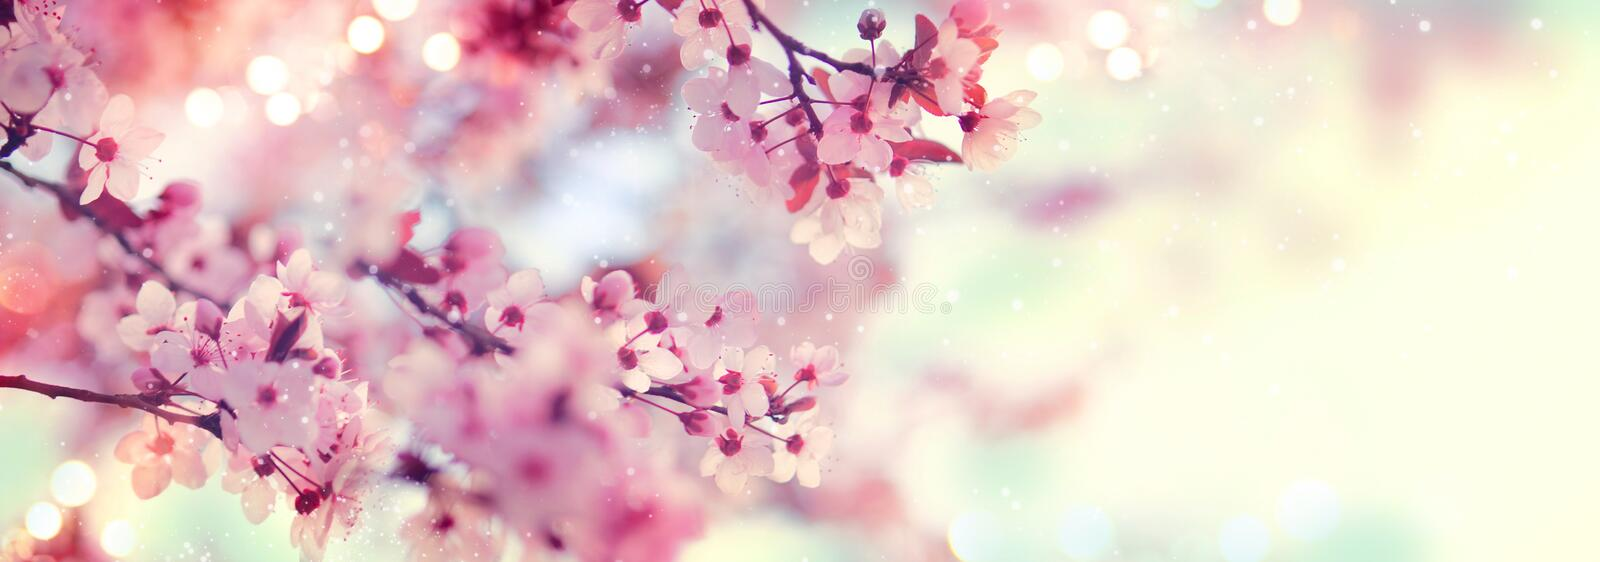 Spring border or background art with pink blossom royalty free stock photos